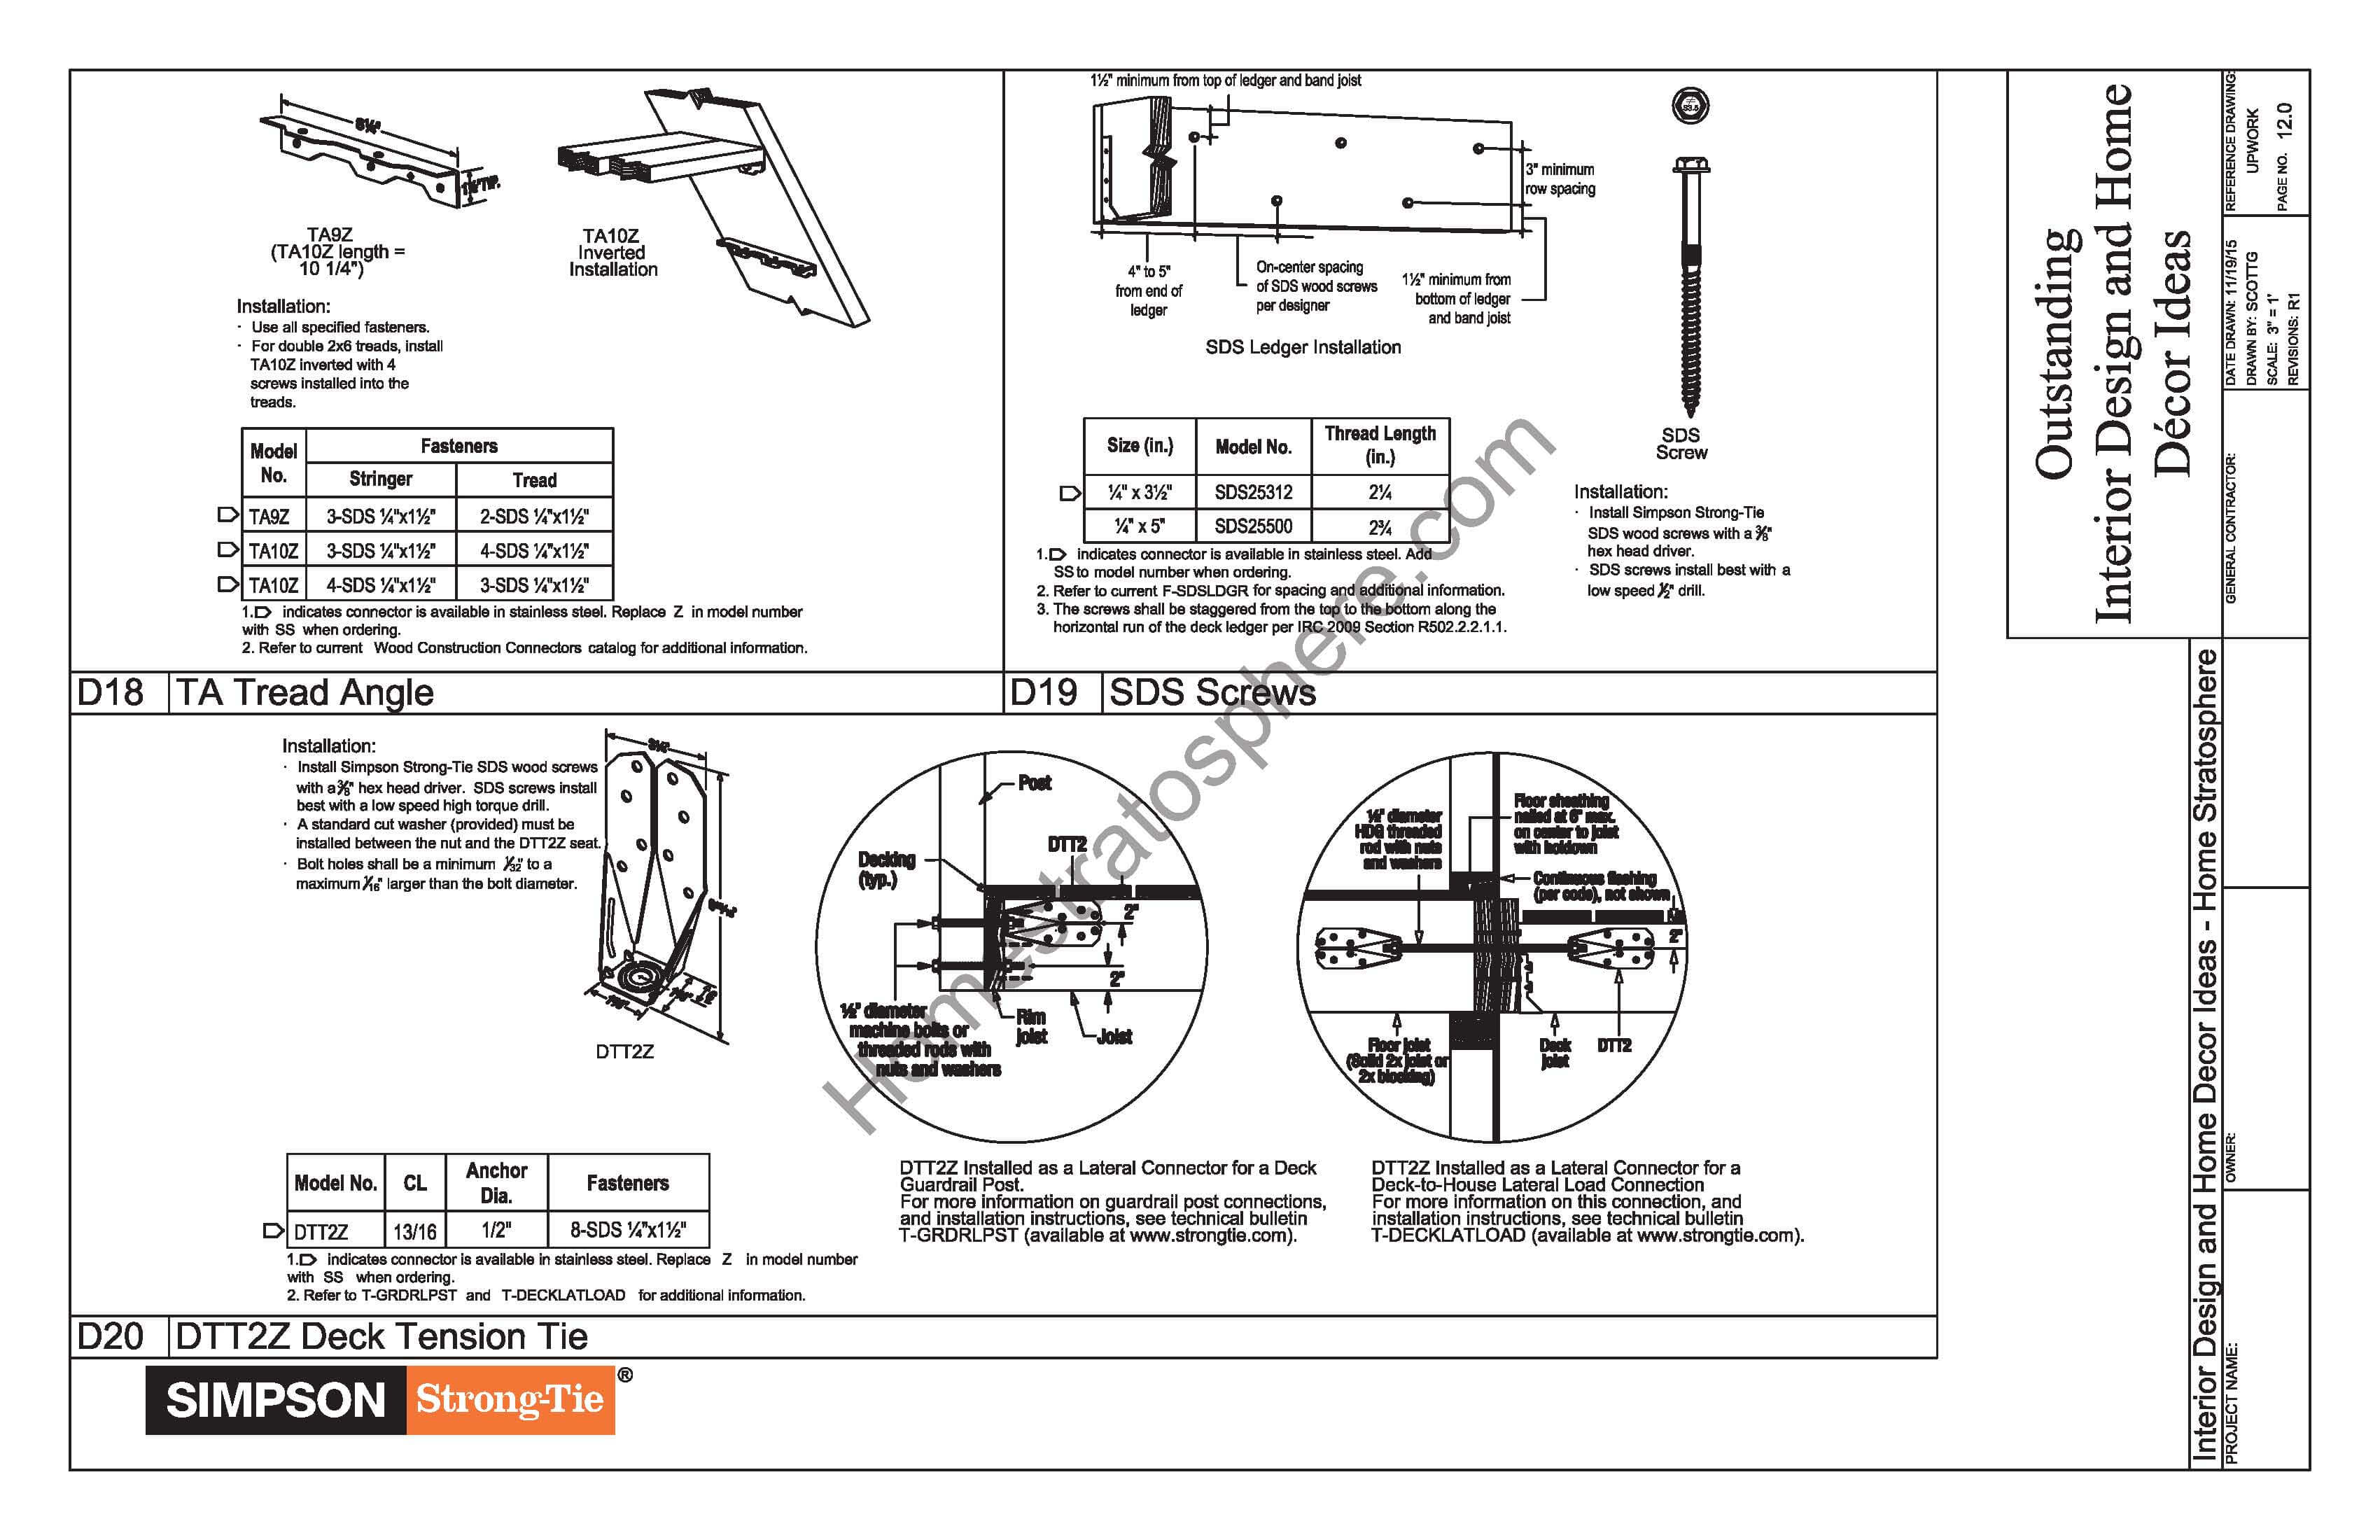 shaded hot tub deck design_Page_15